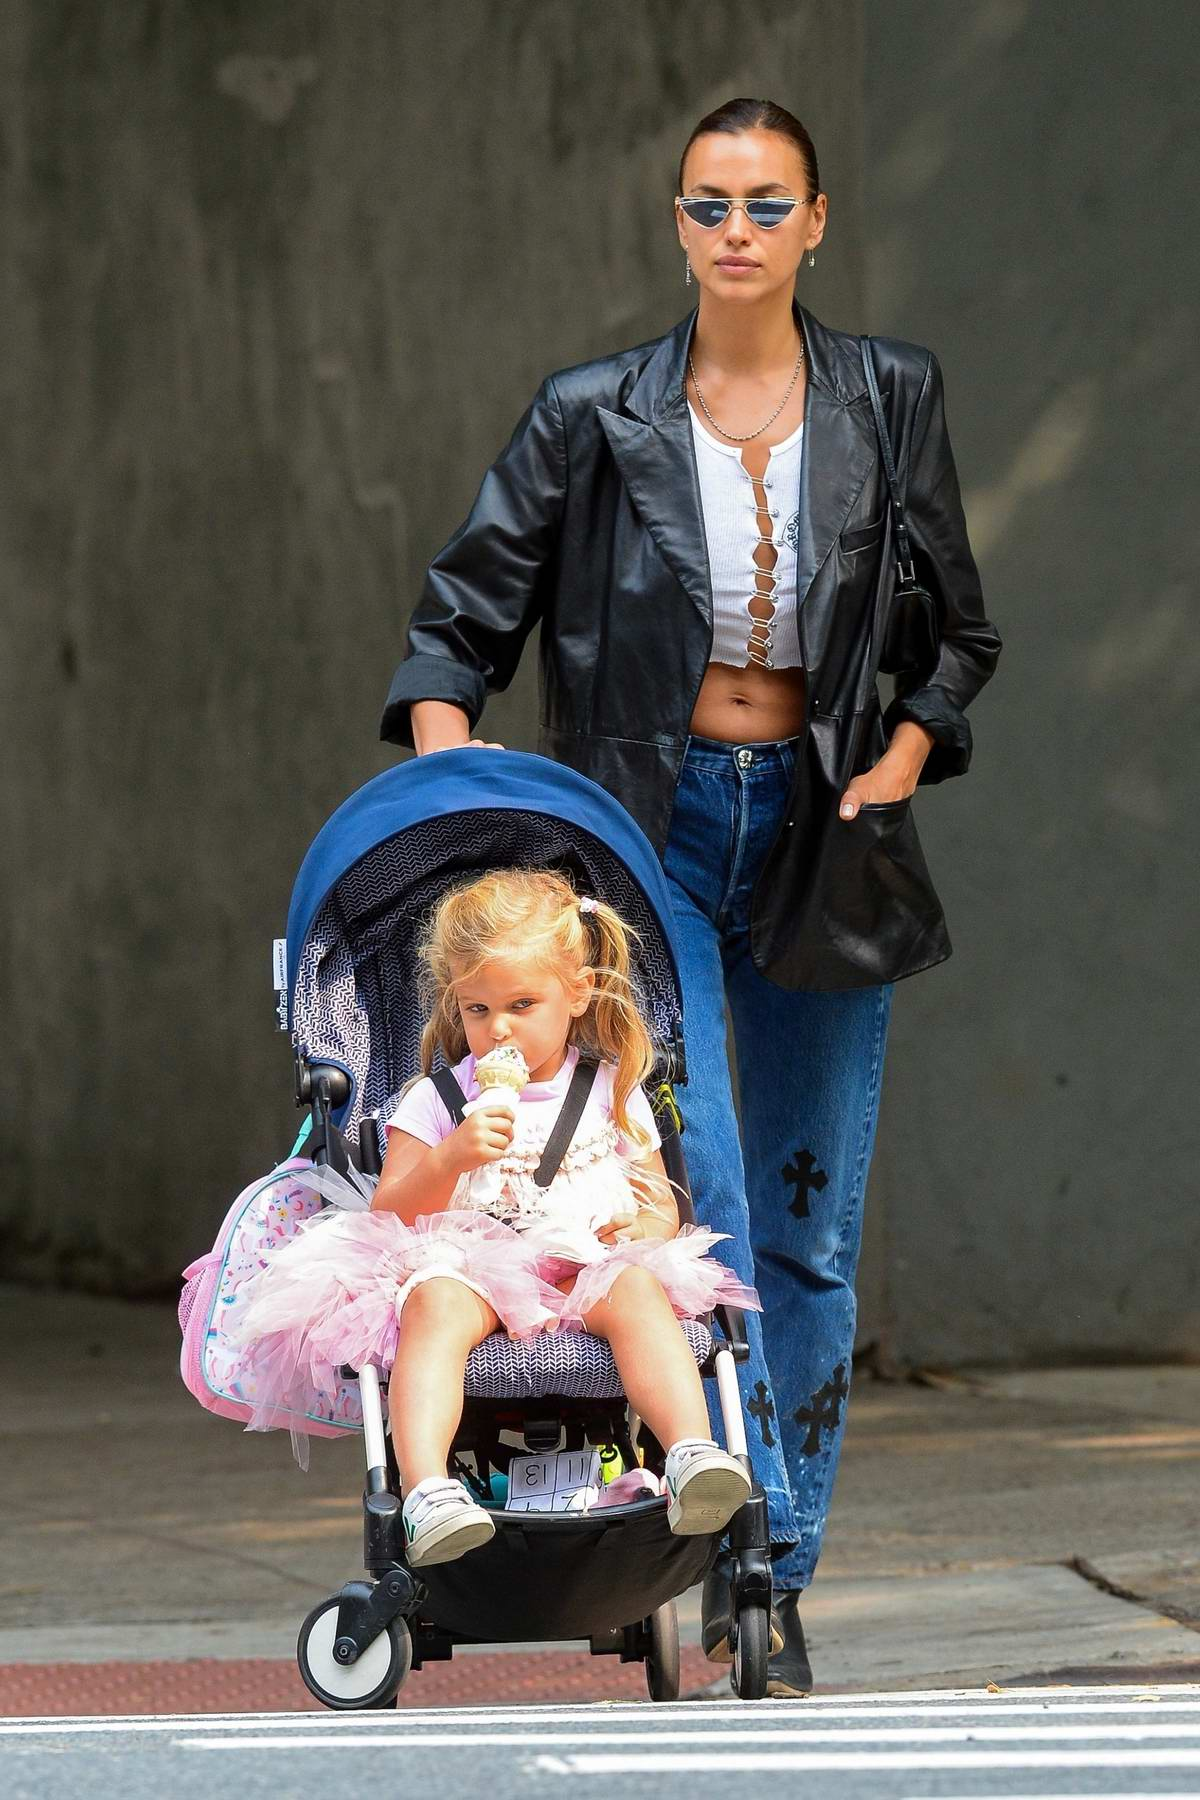 Irina Shayk puts her toned abs on display while on a stroll with her daughter Lea in New York City